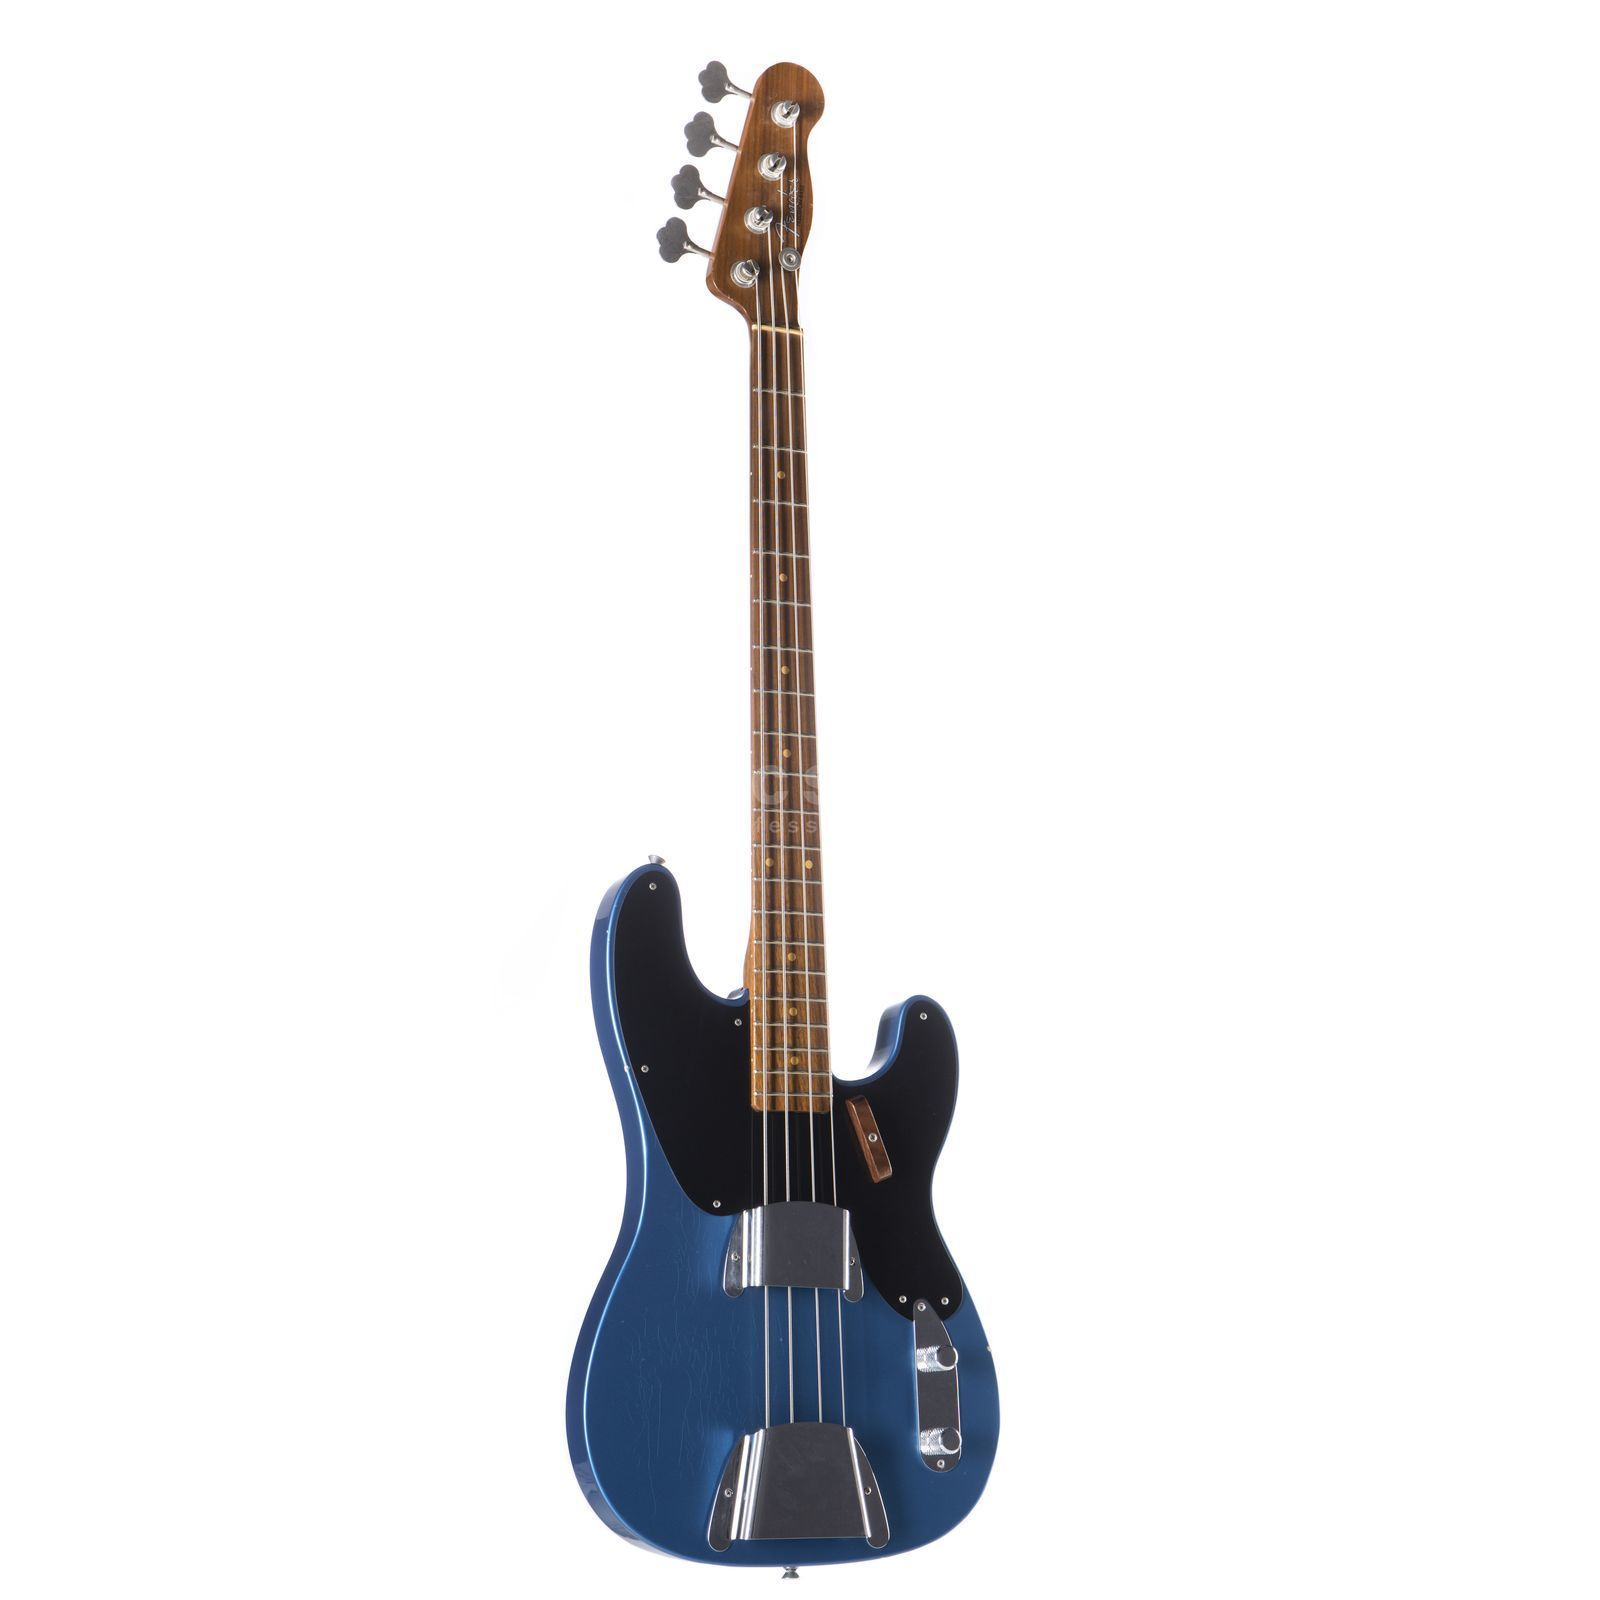 Fender 1951 Precision Bass Closet Classic Lake Placid Blue MB Dennis Galuszka #2759 Изображение товара